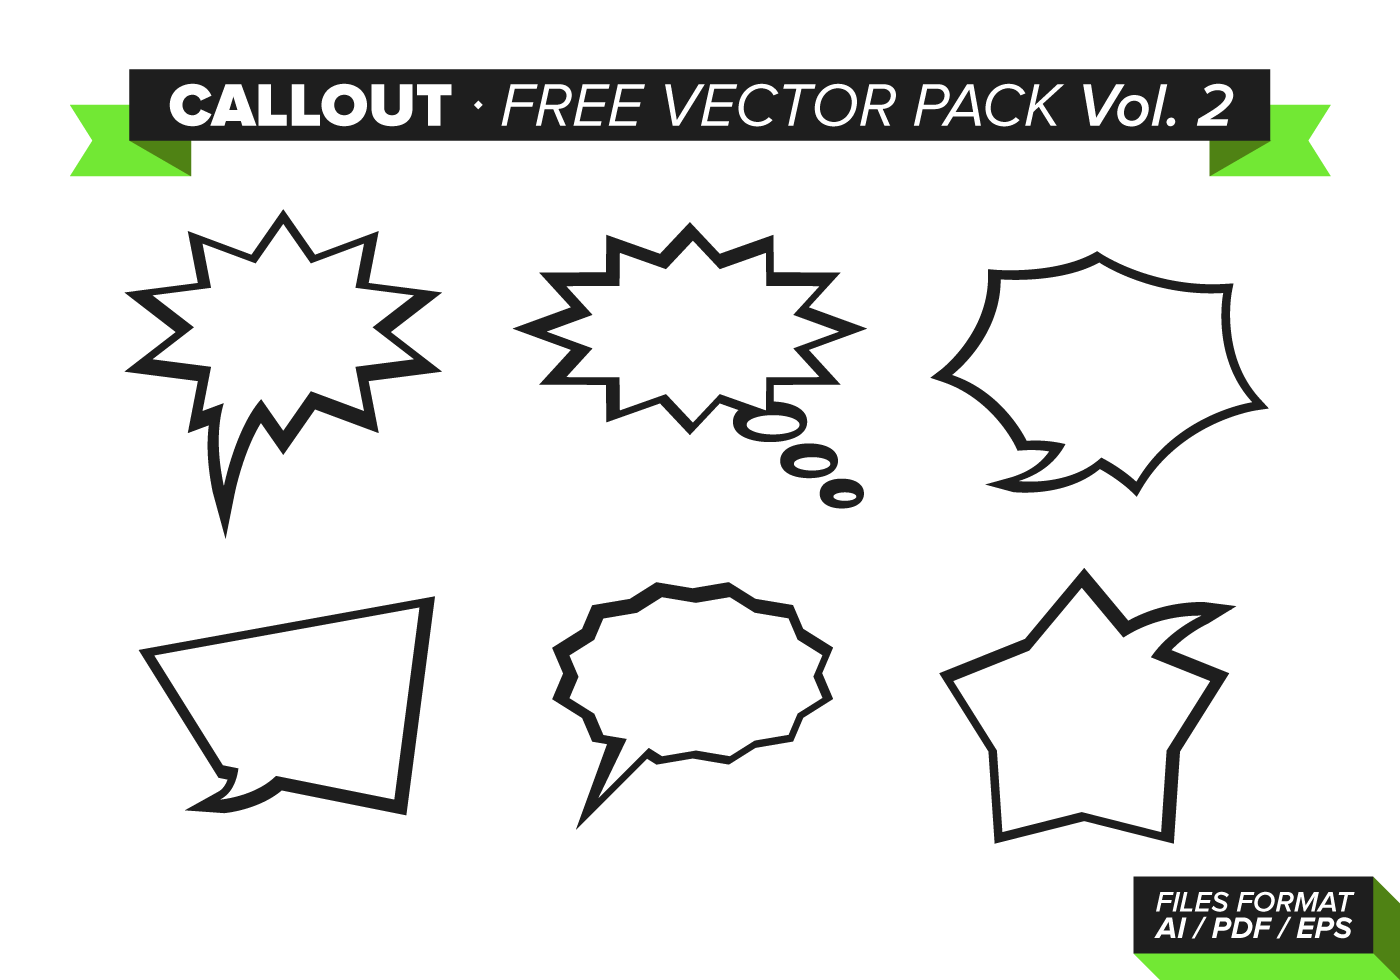 Callout Free Vector Pack Vol. 2